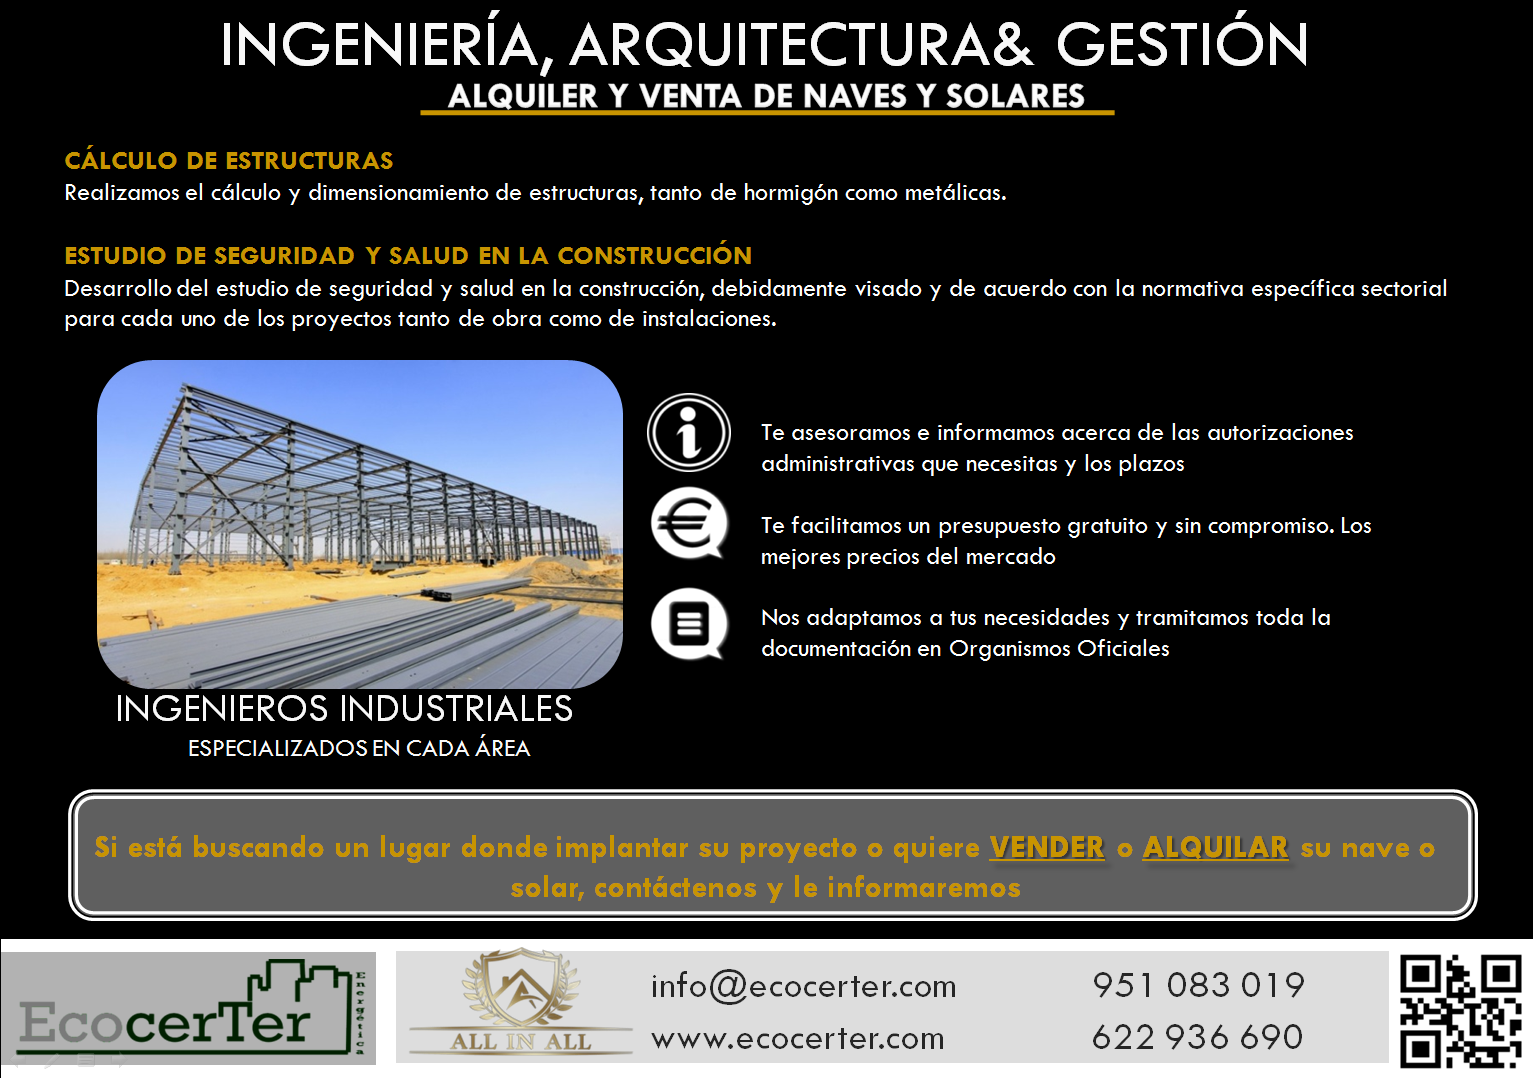 PROJECTS RENT AND SALE OF INDUSTRIAL BUILDINGS AND PLOTS